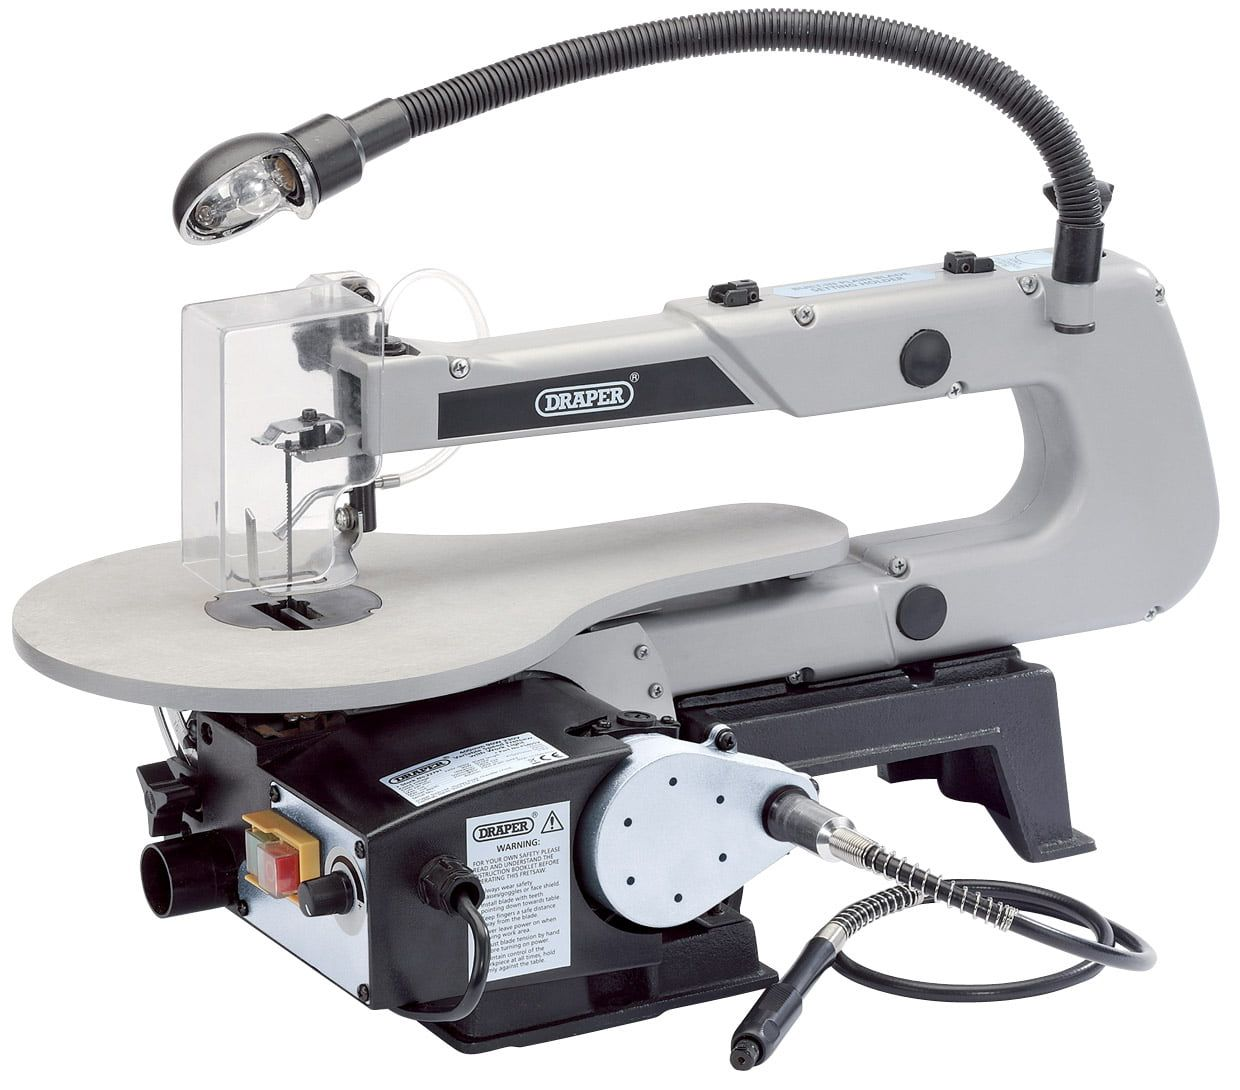 Draper Variable Speed Fretsaw with Flexible Drive Shaft and Work Light